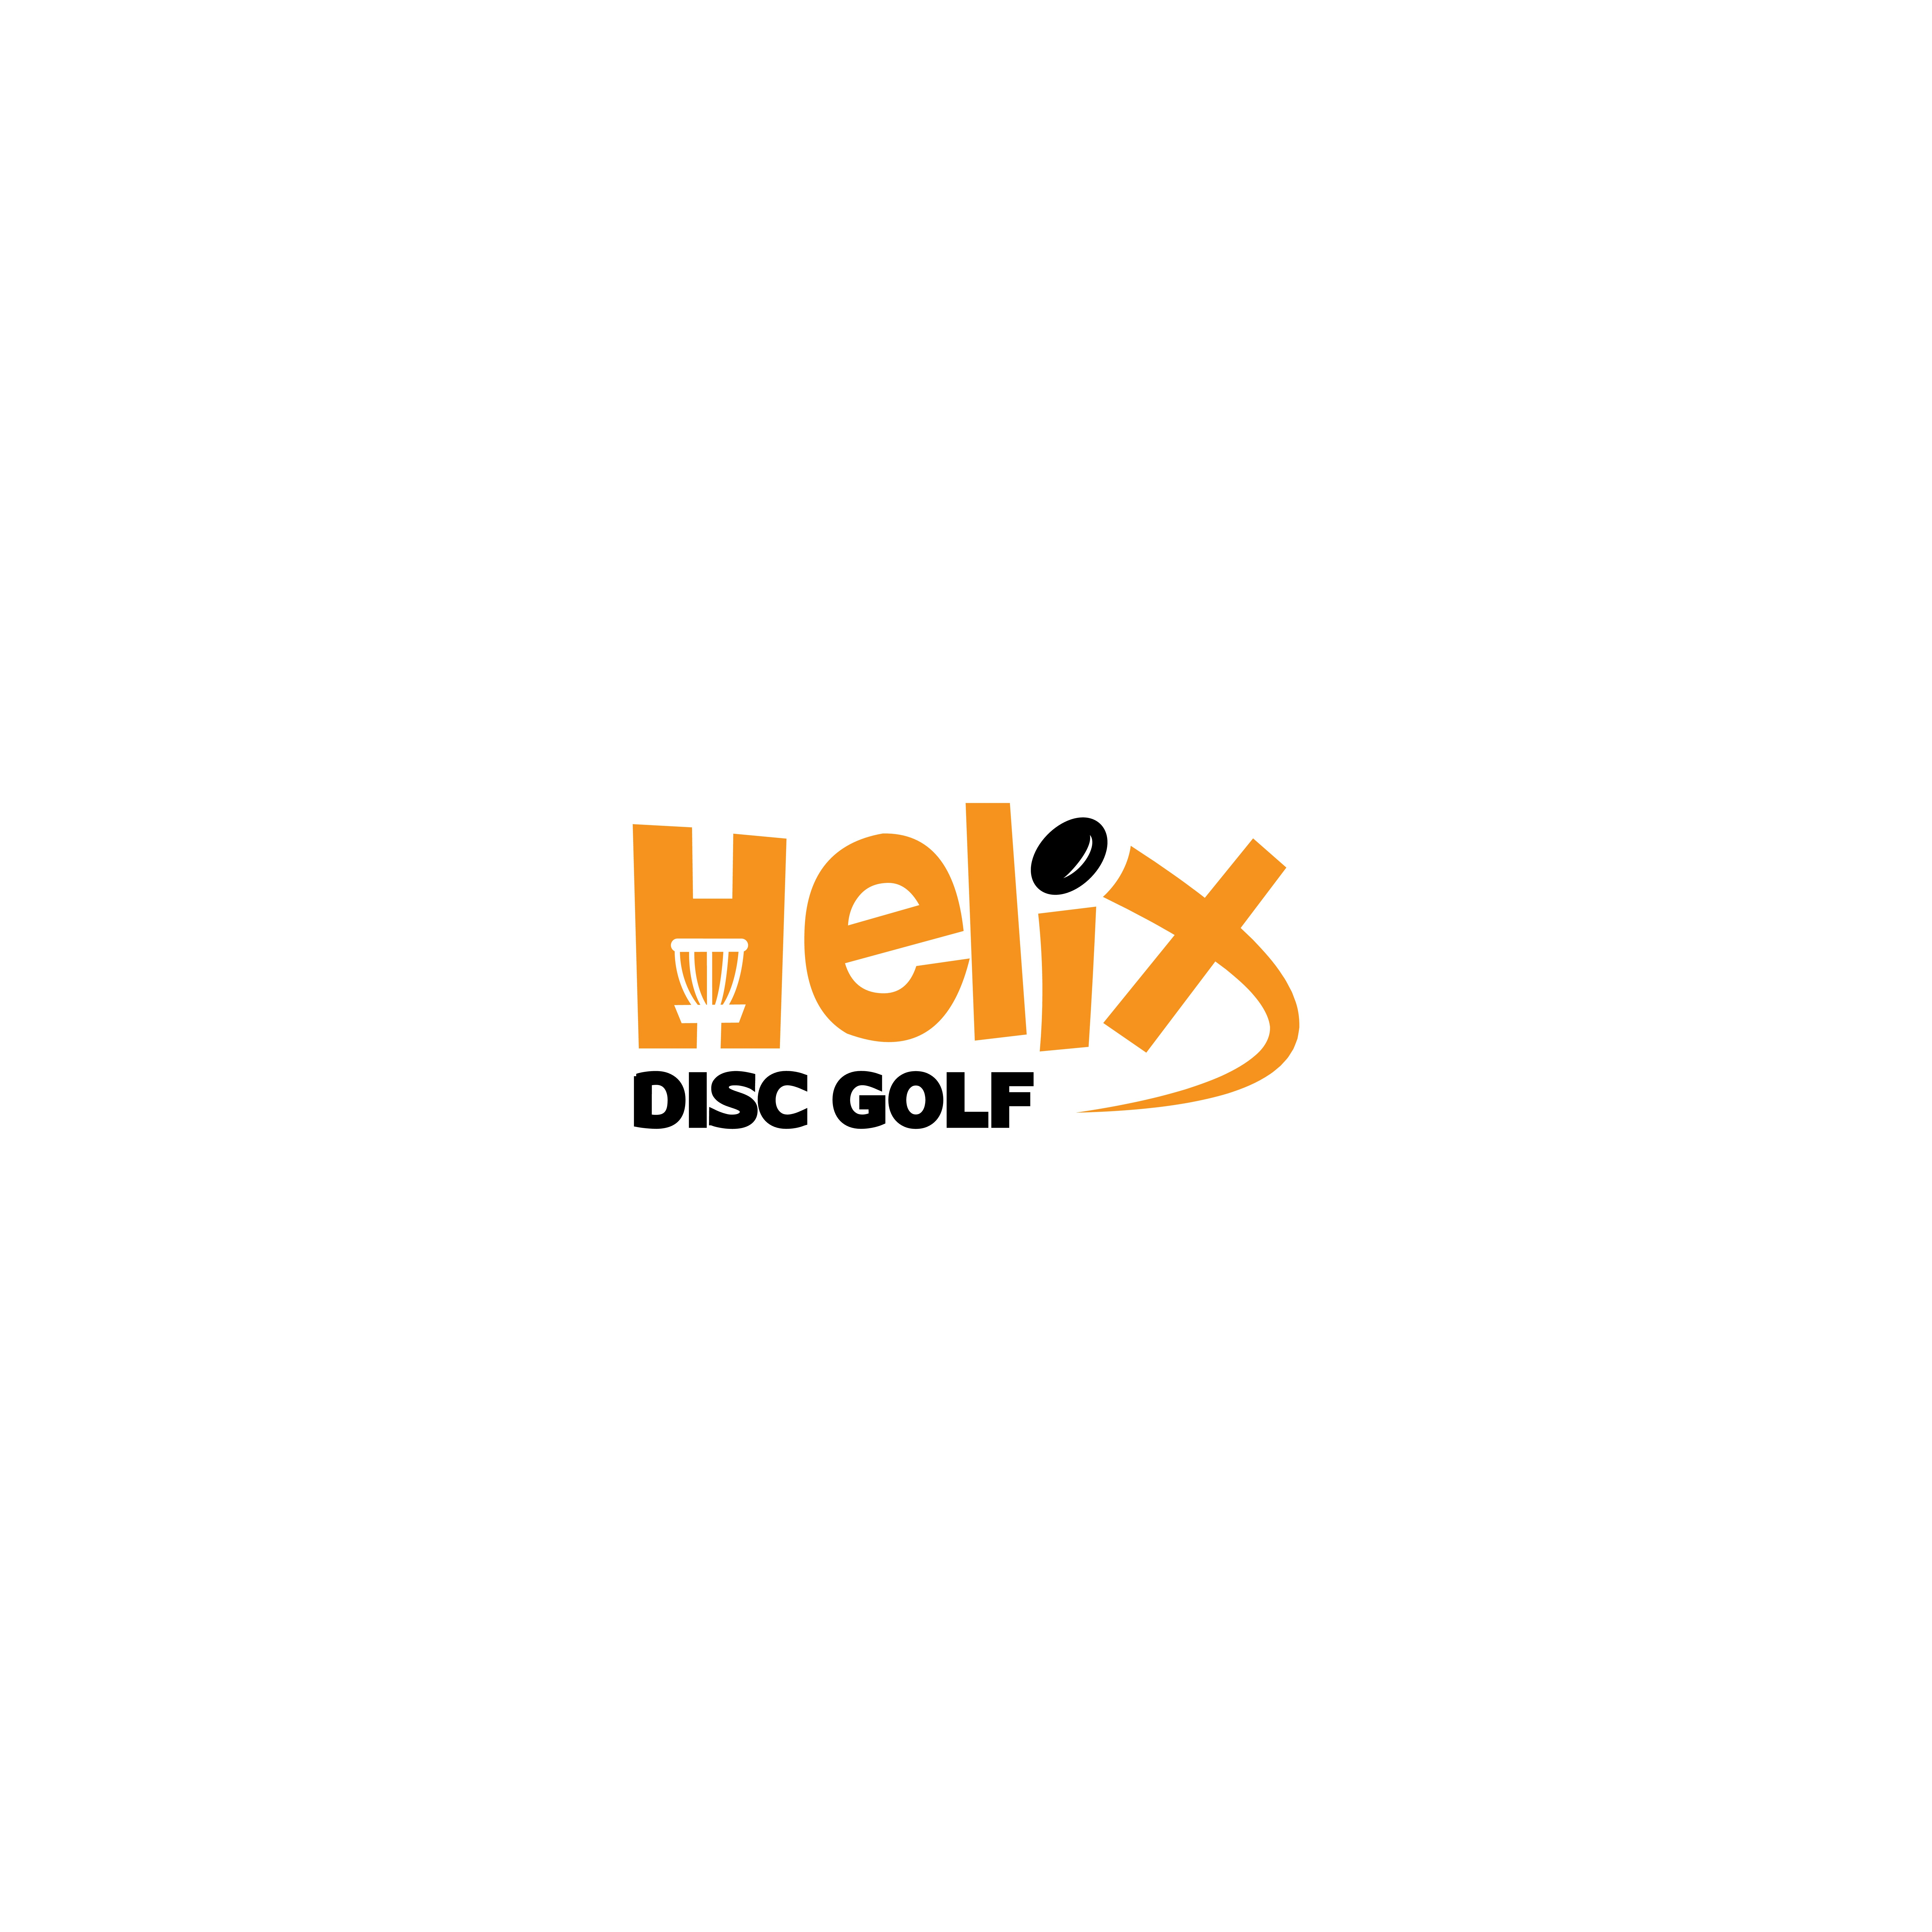 Create a trendy disc golf logo that people will want to rock on their gear, ie. hats, tees, bags, etc